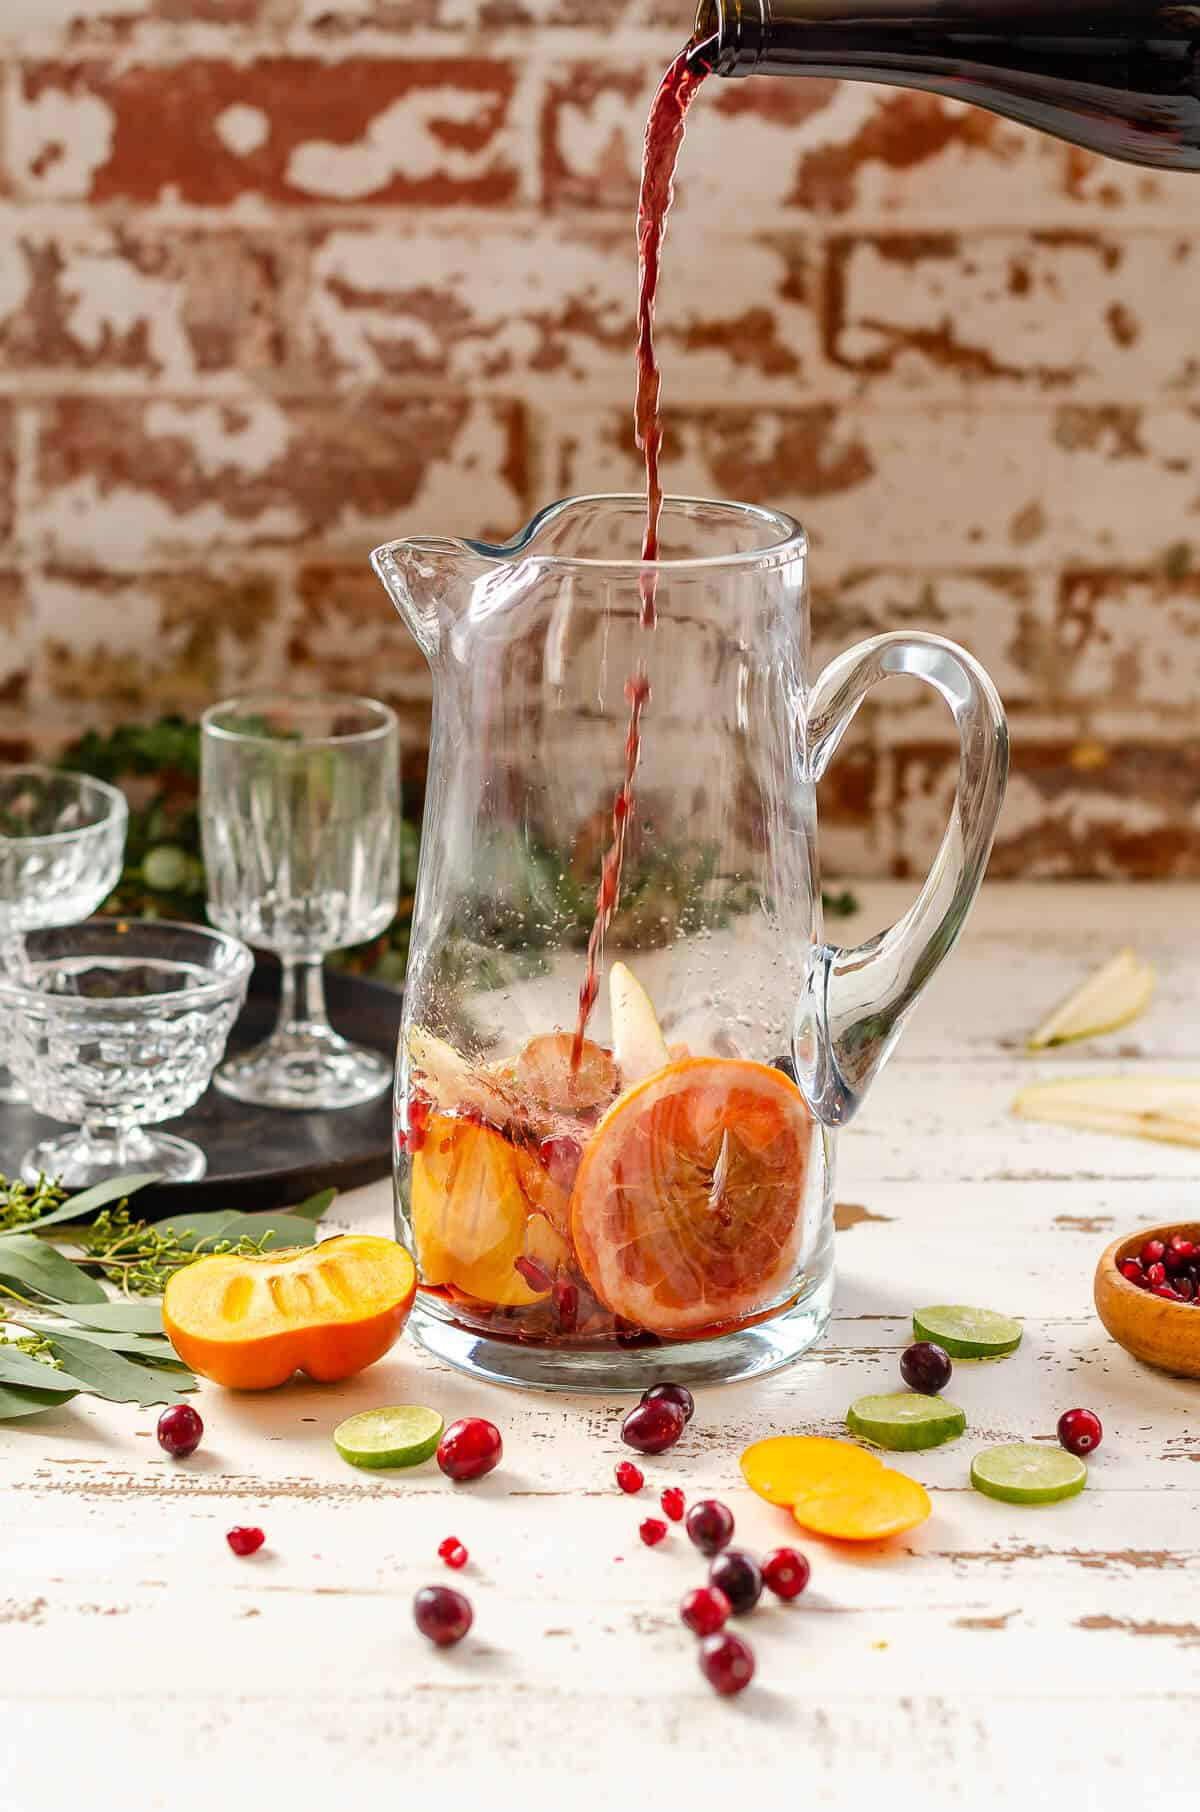 clear glass pitcher with grapefruit, persimmon, pears, and cranberries in the bottom, with red non-alcoholic wine being poured in.